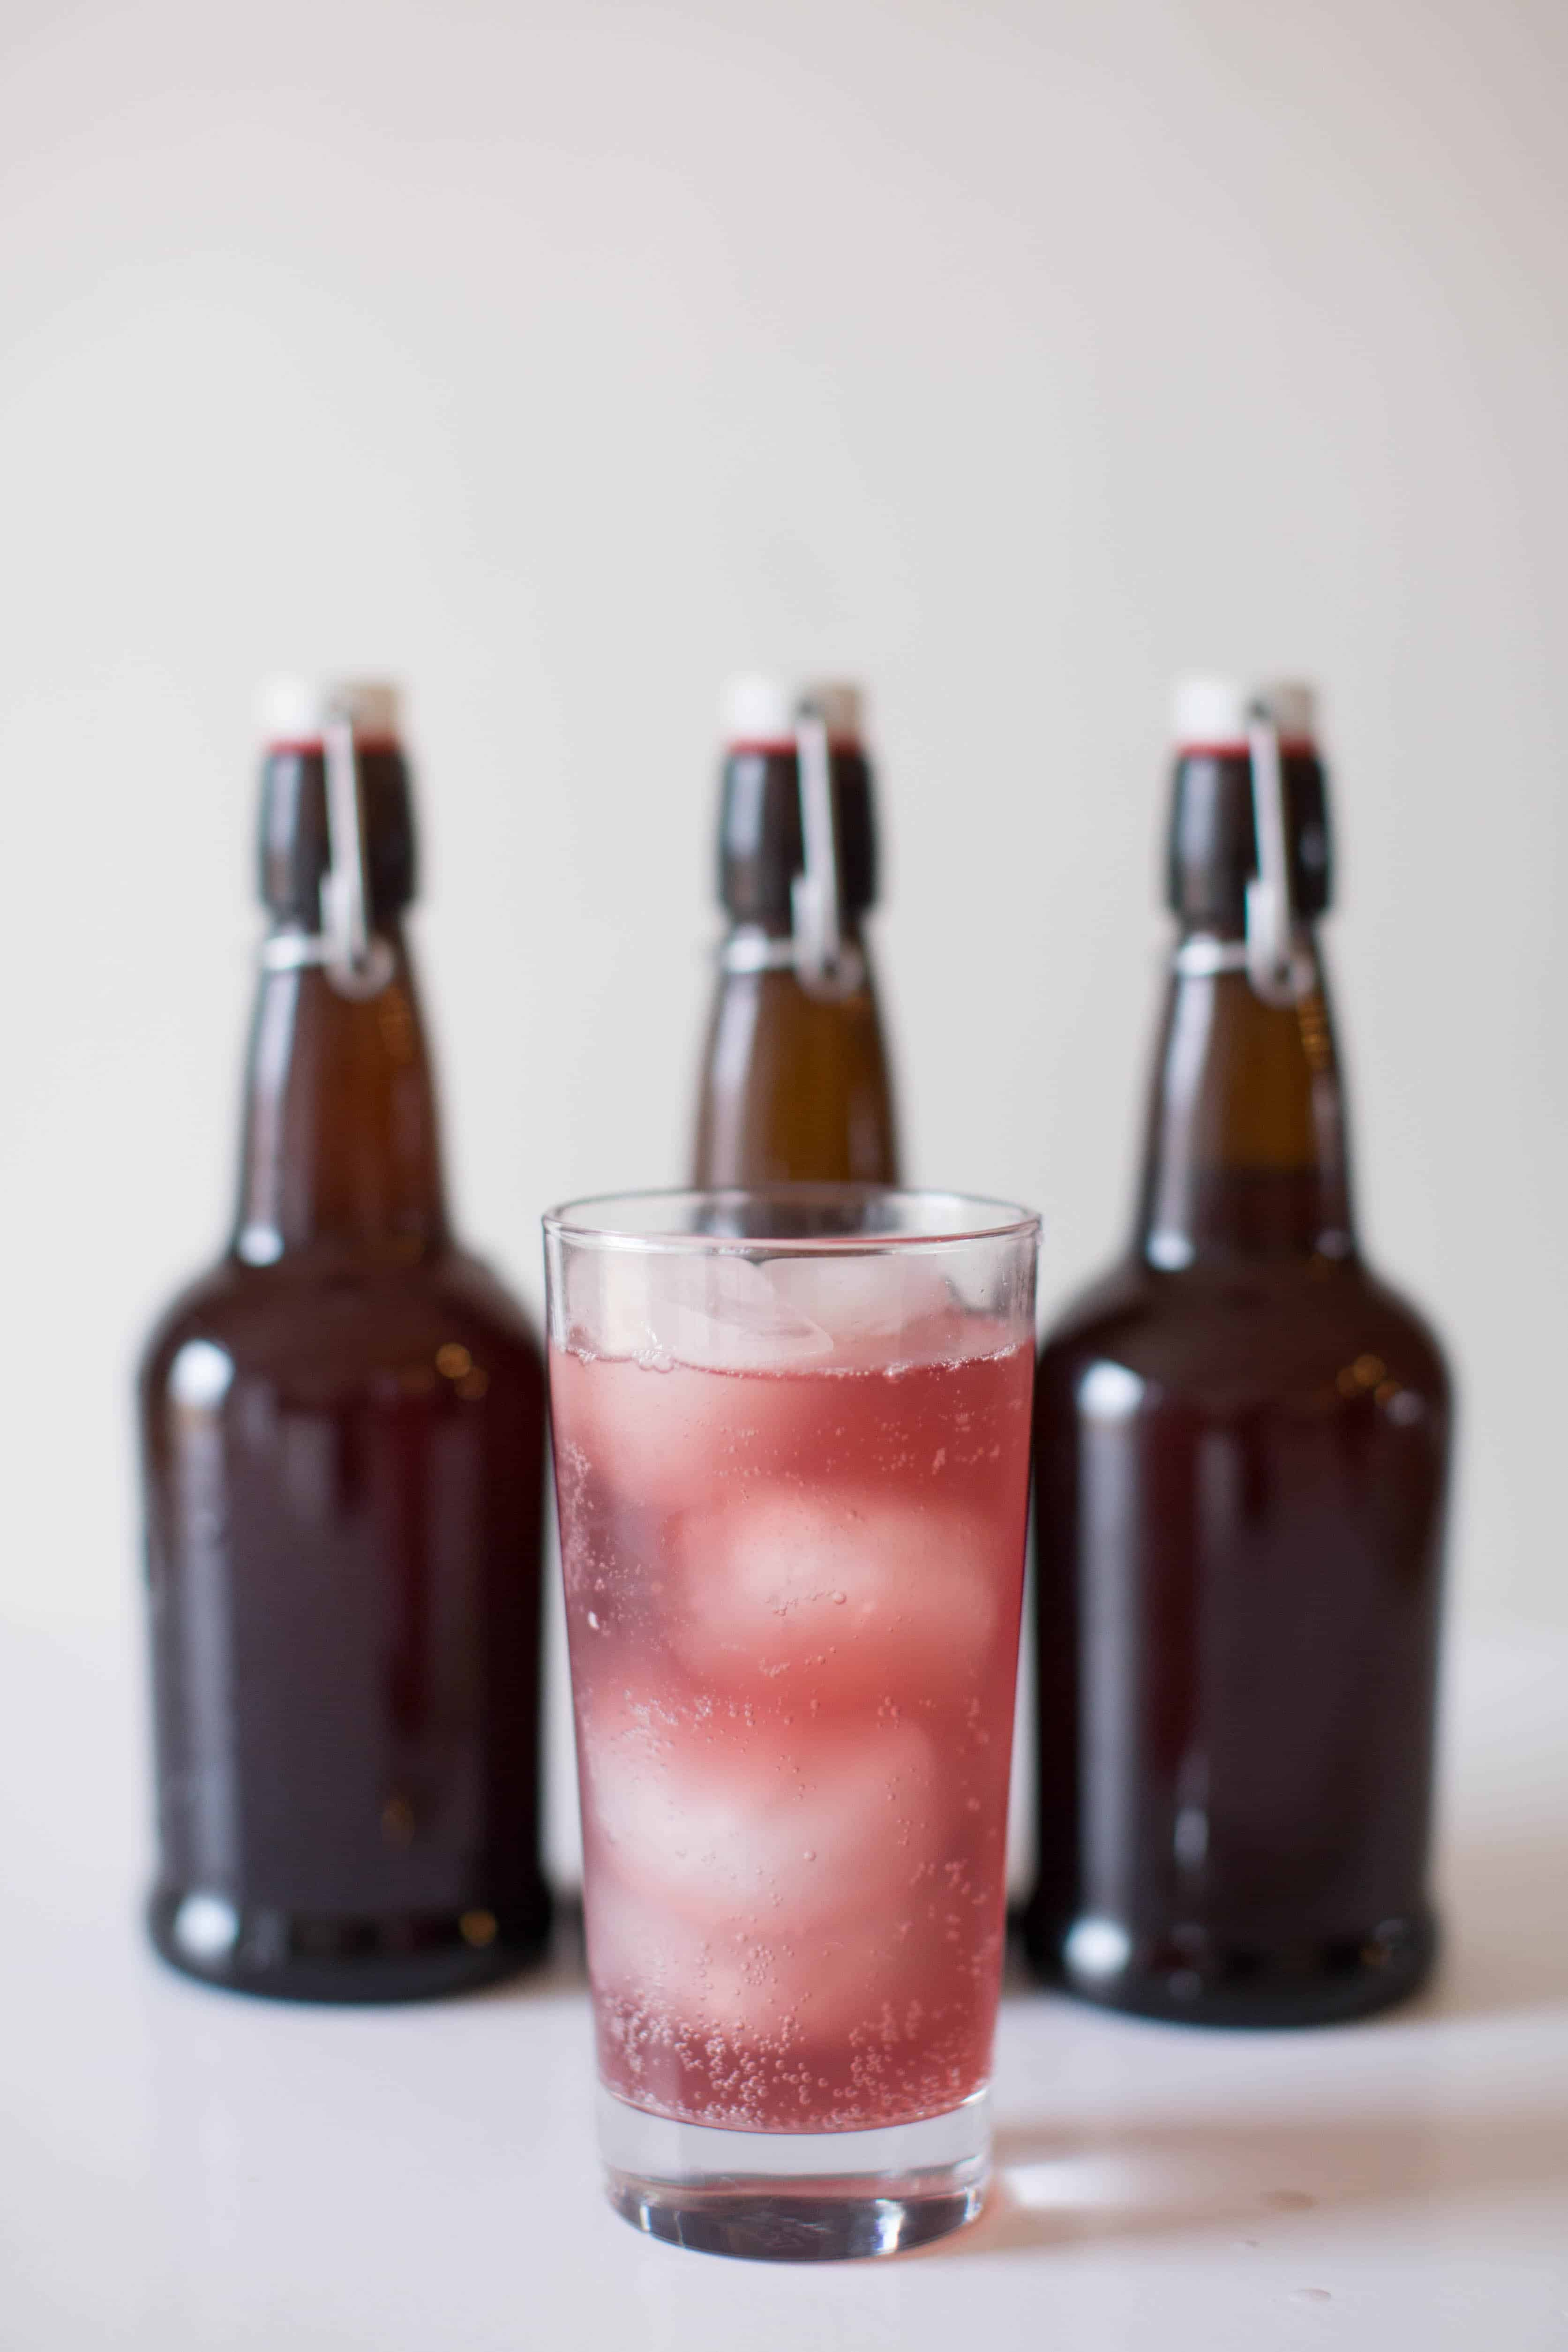 Grape water kefir in glass cup with amber flip top soda bottles in background.